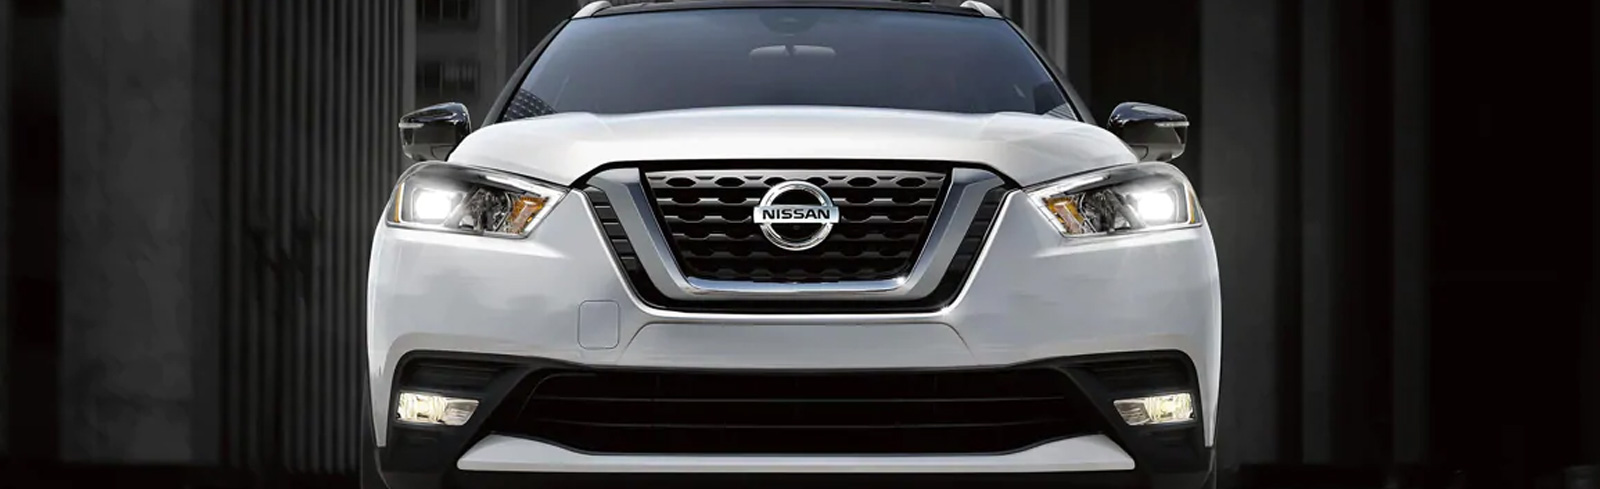 2020 Nissan Maxima For Sale